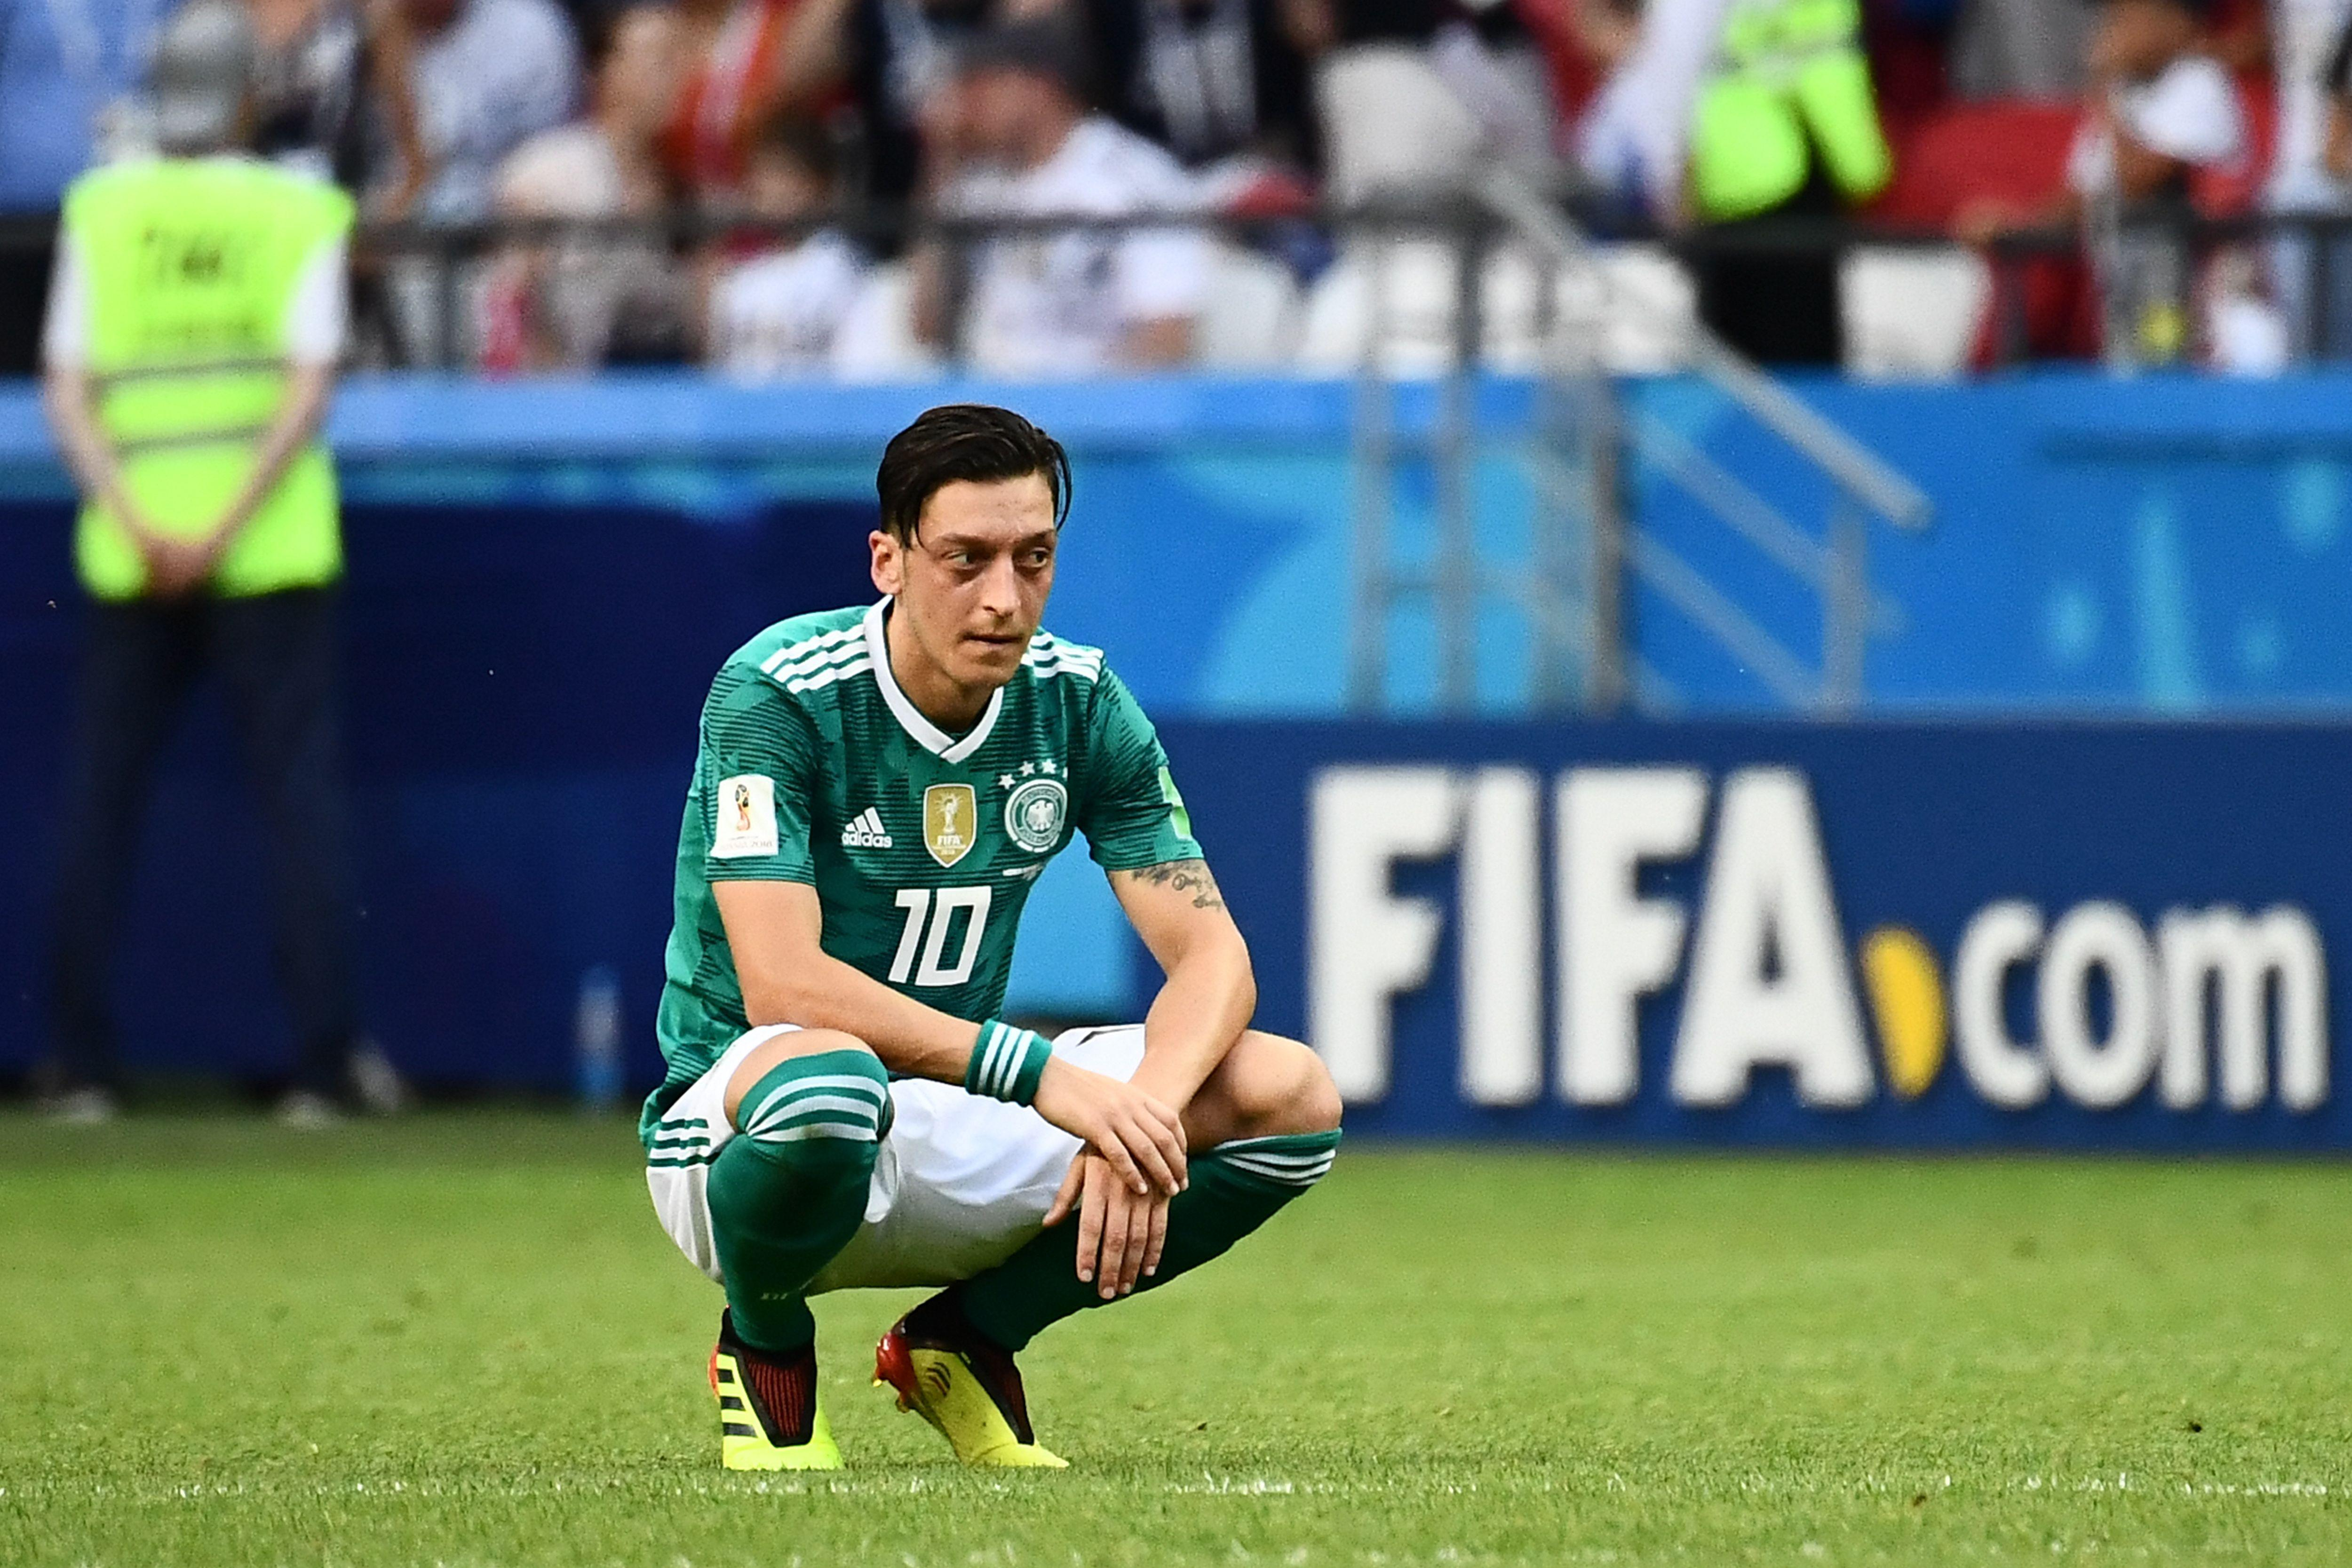 Germany's midfielder Mesut Ozil reacts after South Korea's forward Son Heung-min (unseen) scored the second goal during the Russia 2018 World Cup Group F football match between South Korea and Germany at the Kazan Arena in Kazan on June 27, 2018. (Photo by Jewel SAMAD / AFP) / RESTRICTED TO EDITORIAL USE - NO MOBILE PUSH ALERTS/DOWNLOADS        (Photo credit should read JEWEL SAMAD/AFP/Getty Images)